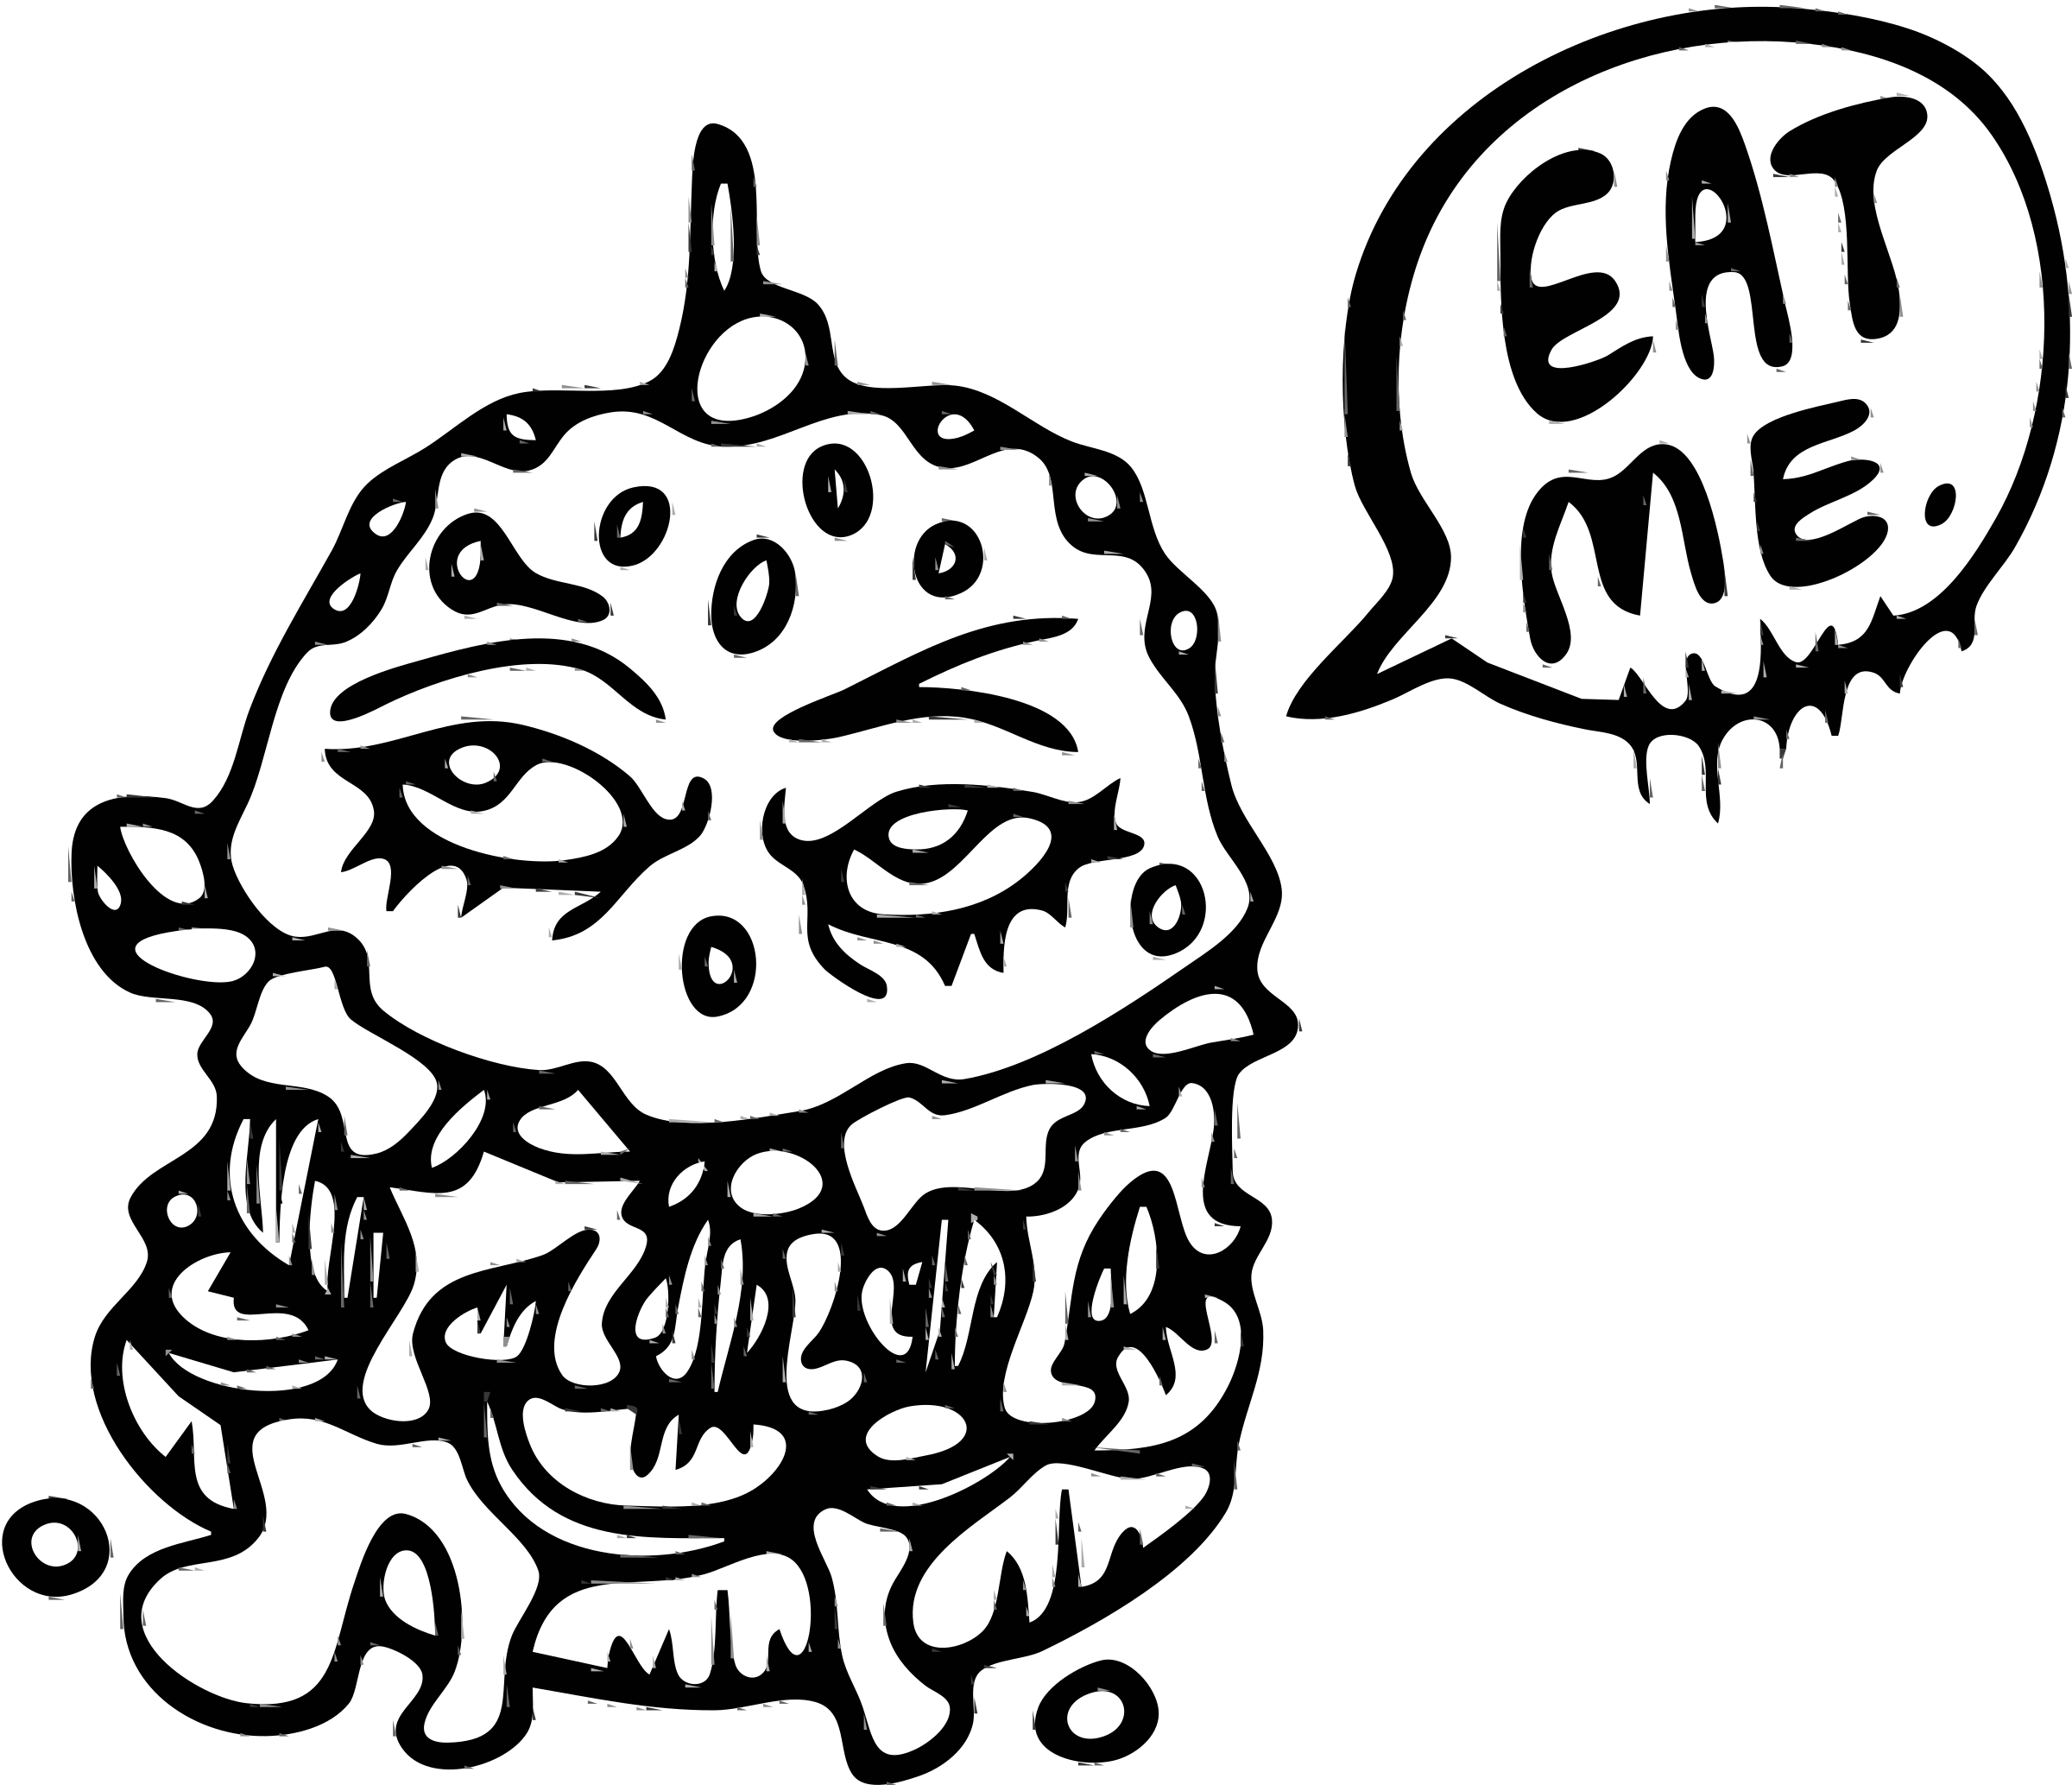 Eat This Burger (black and white) by Ghost Guts